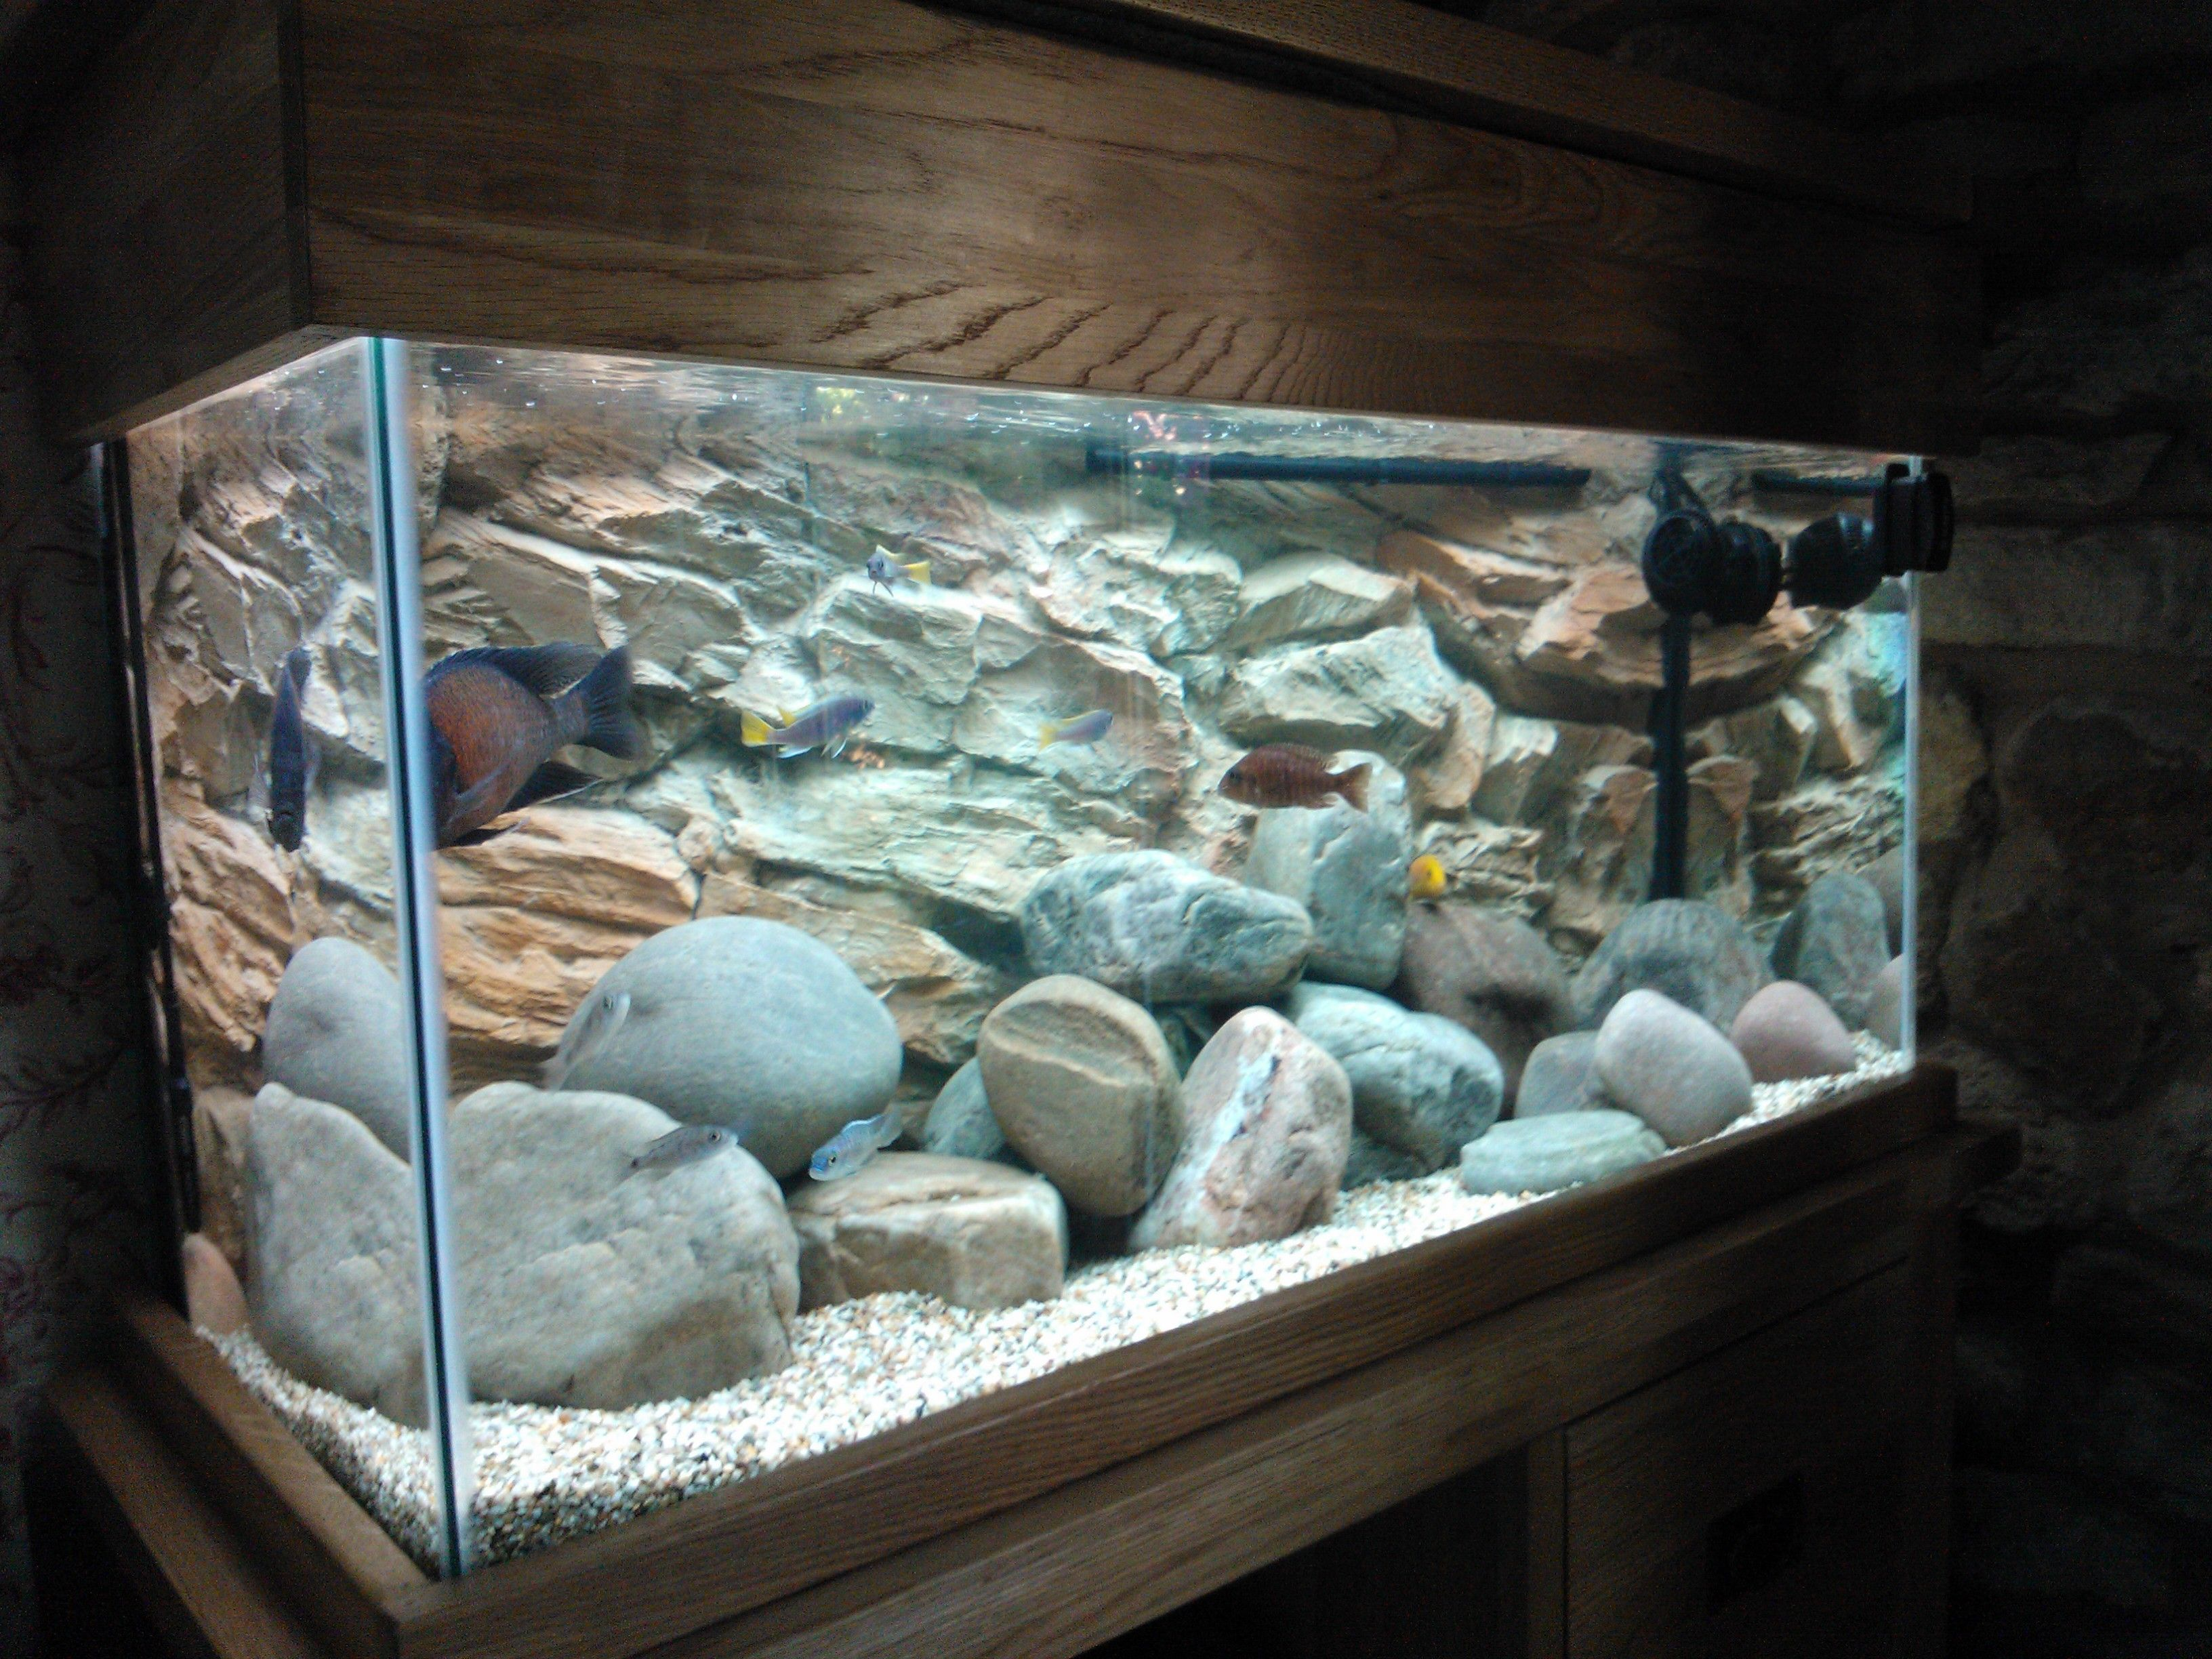 3d rock background aquariums pinterest 3d rock and for Aquarium decoration paint